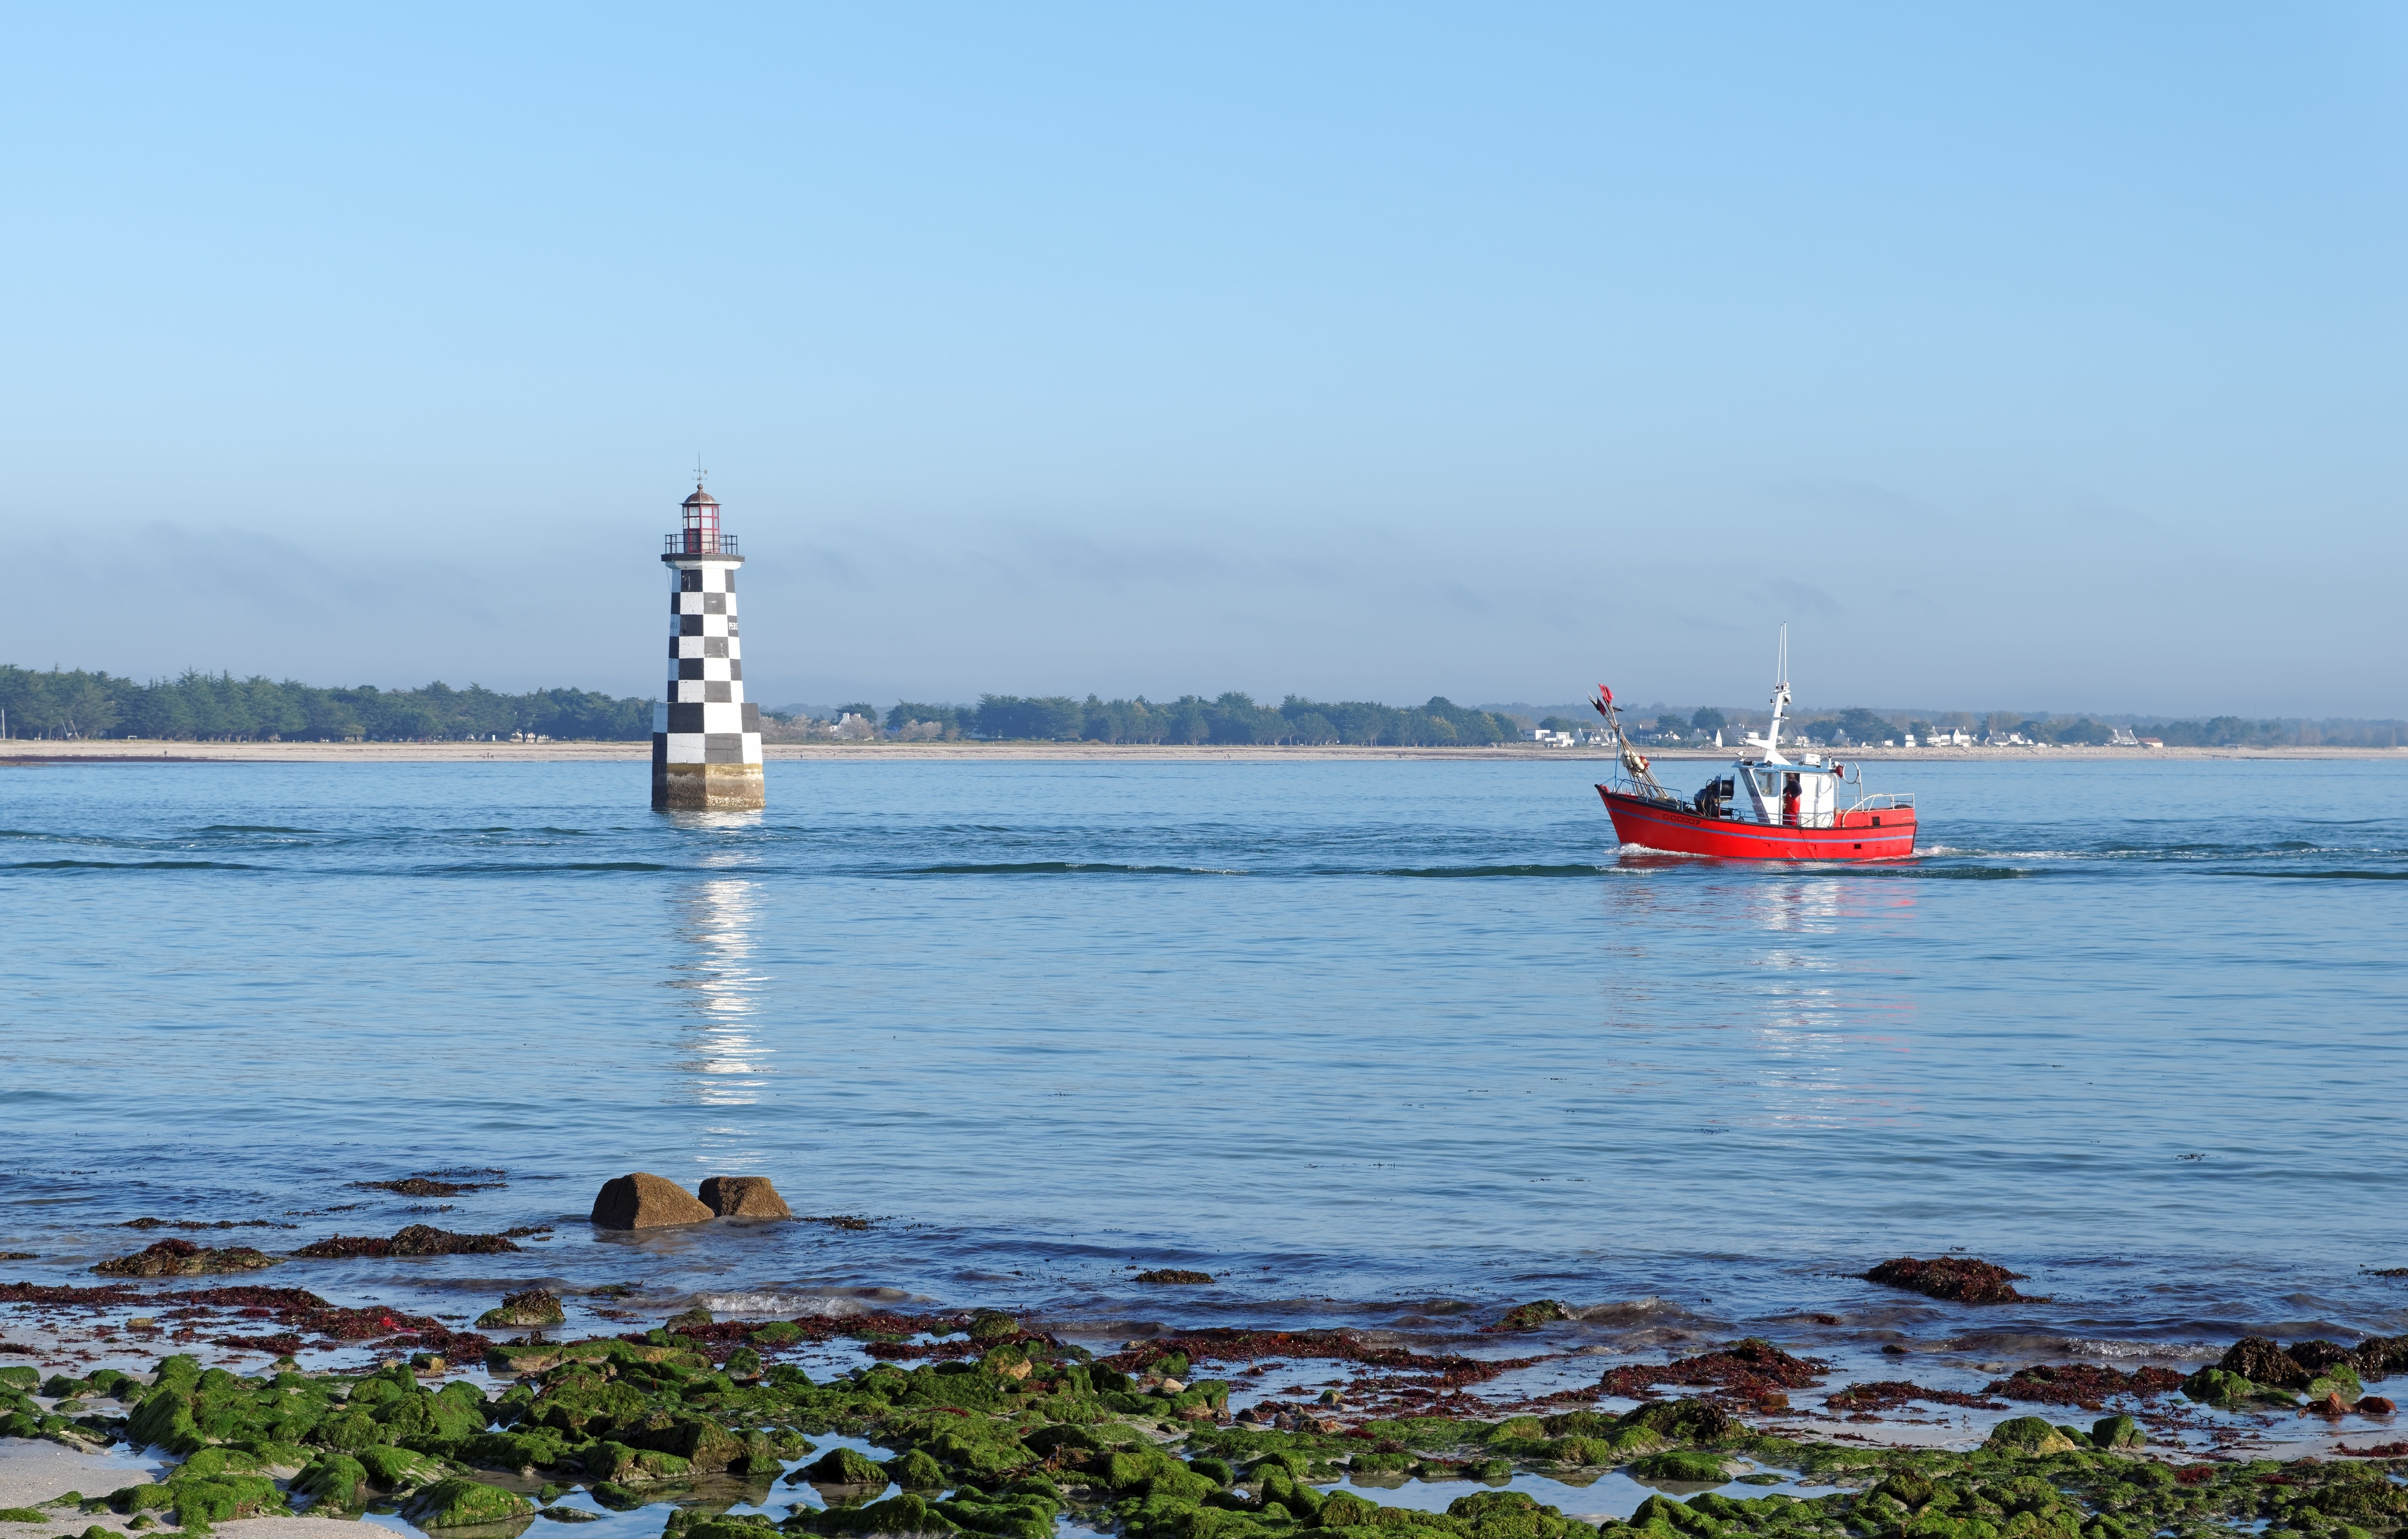 Loctudy, Finistere, France